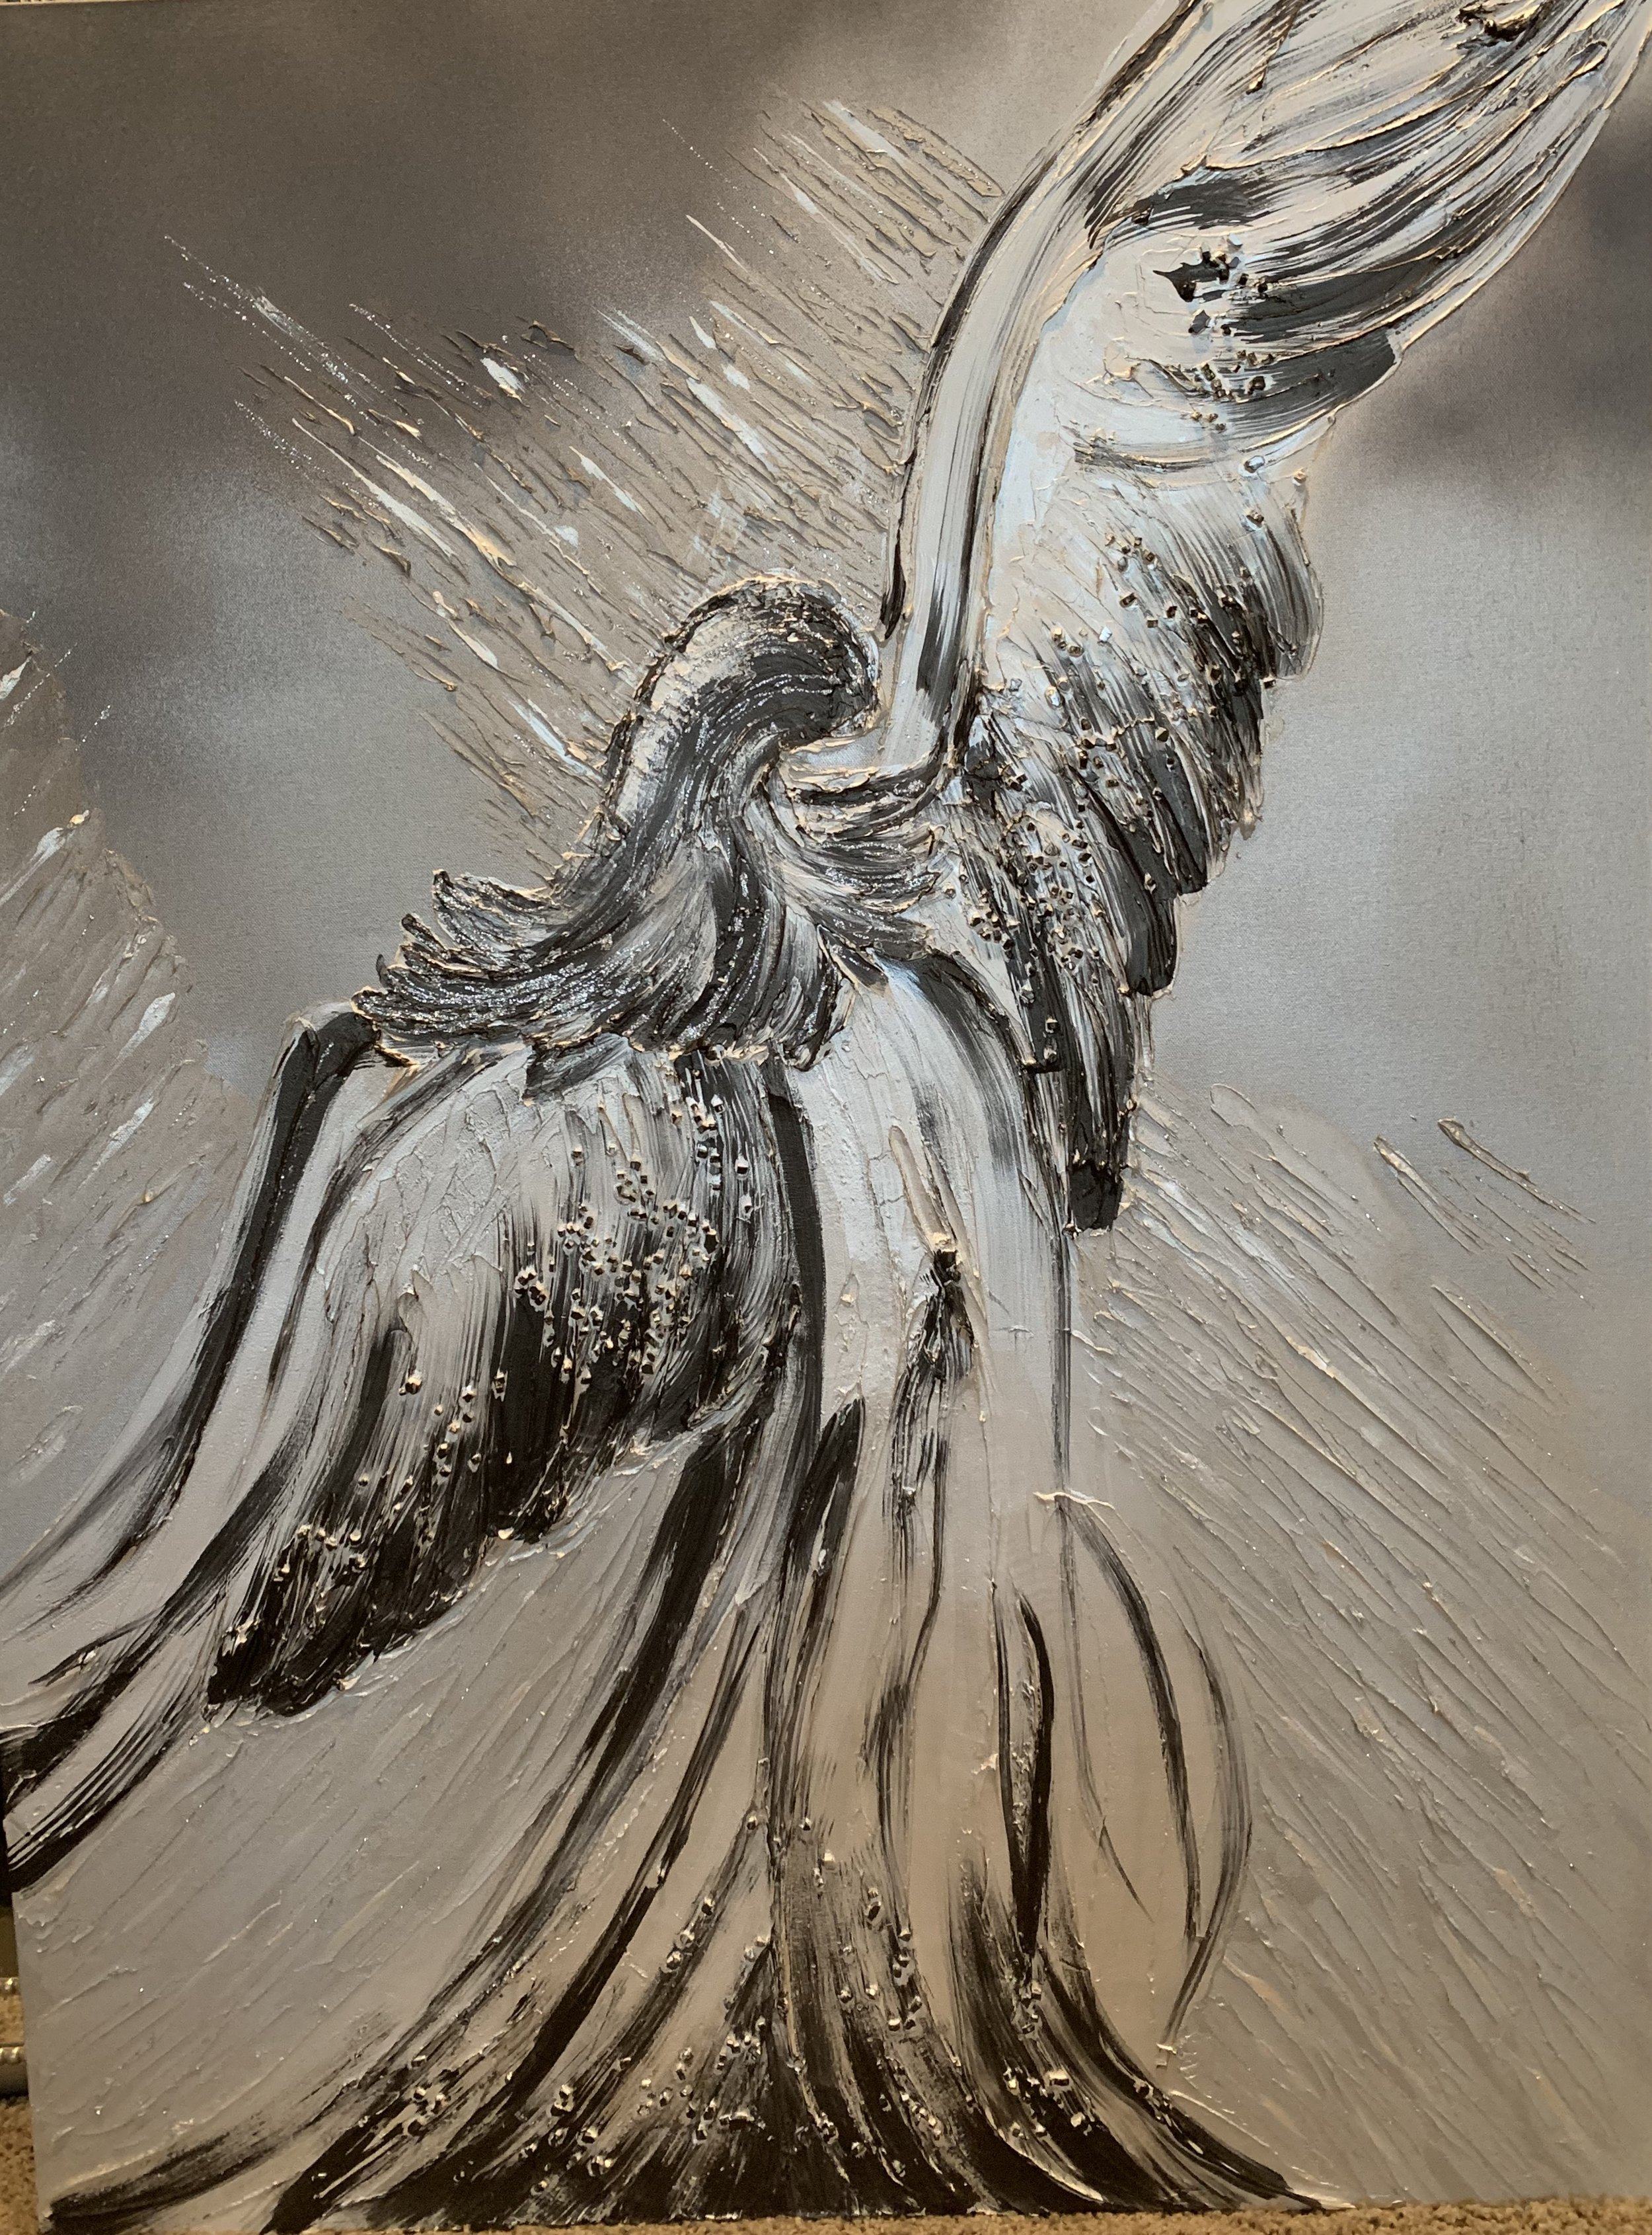 'Angel' will inspire you to see the possibilities. She is shown in black, diamond white and grey tones. She is embellished with texture and just enough sparkle. She is shown in a 36x48.